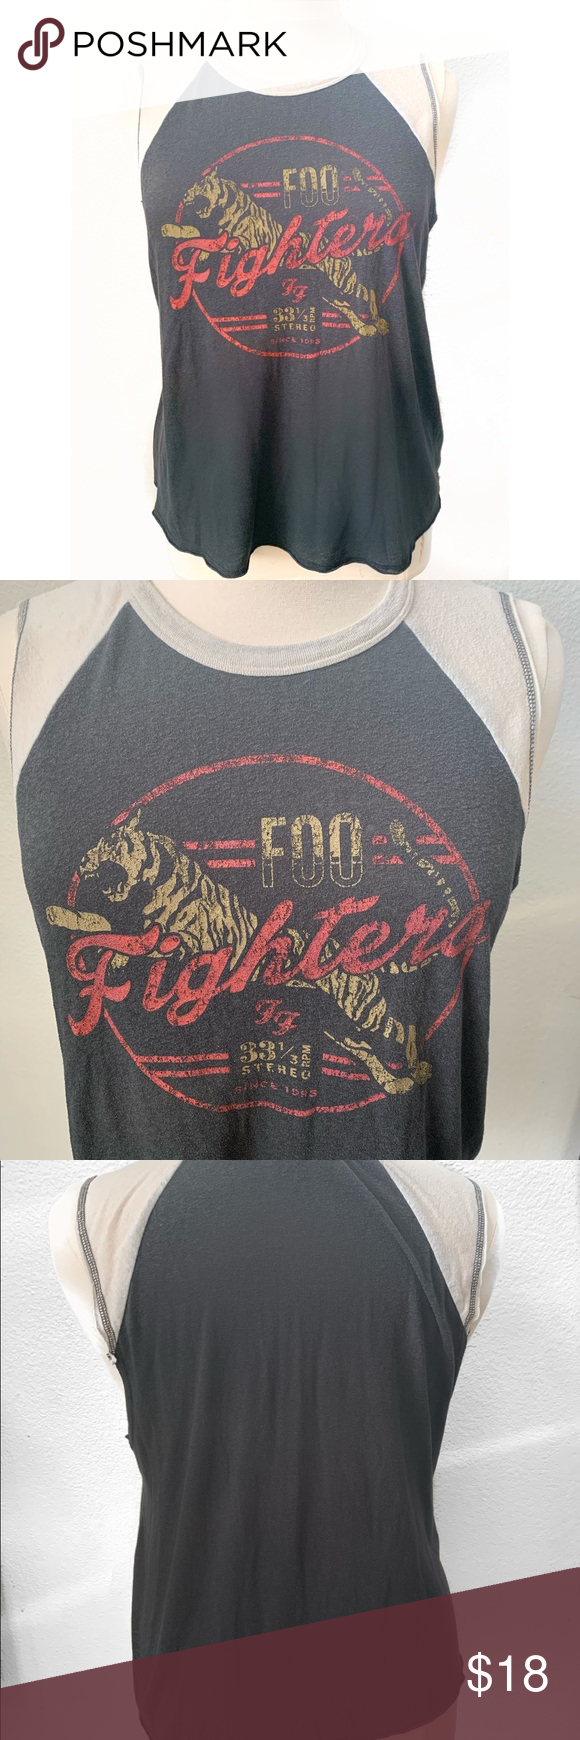 80c220aed7b Foo Fighters tank top plus size 1x Good used condition Lightweight ...